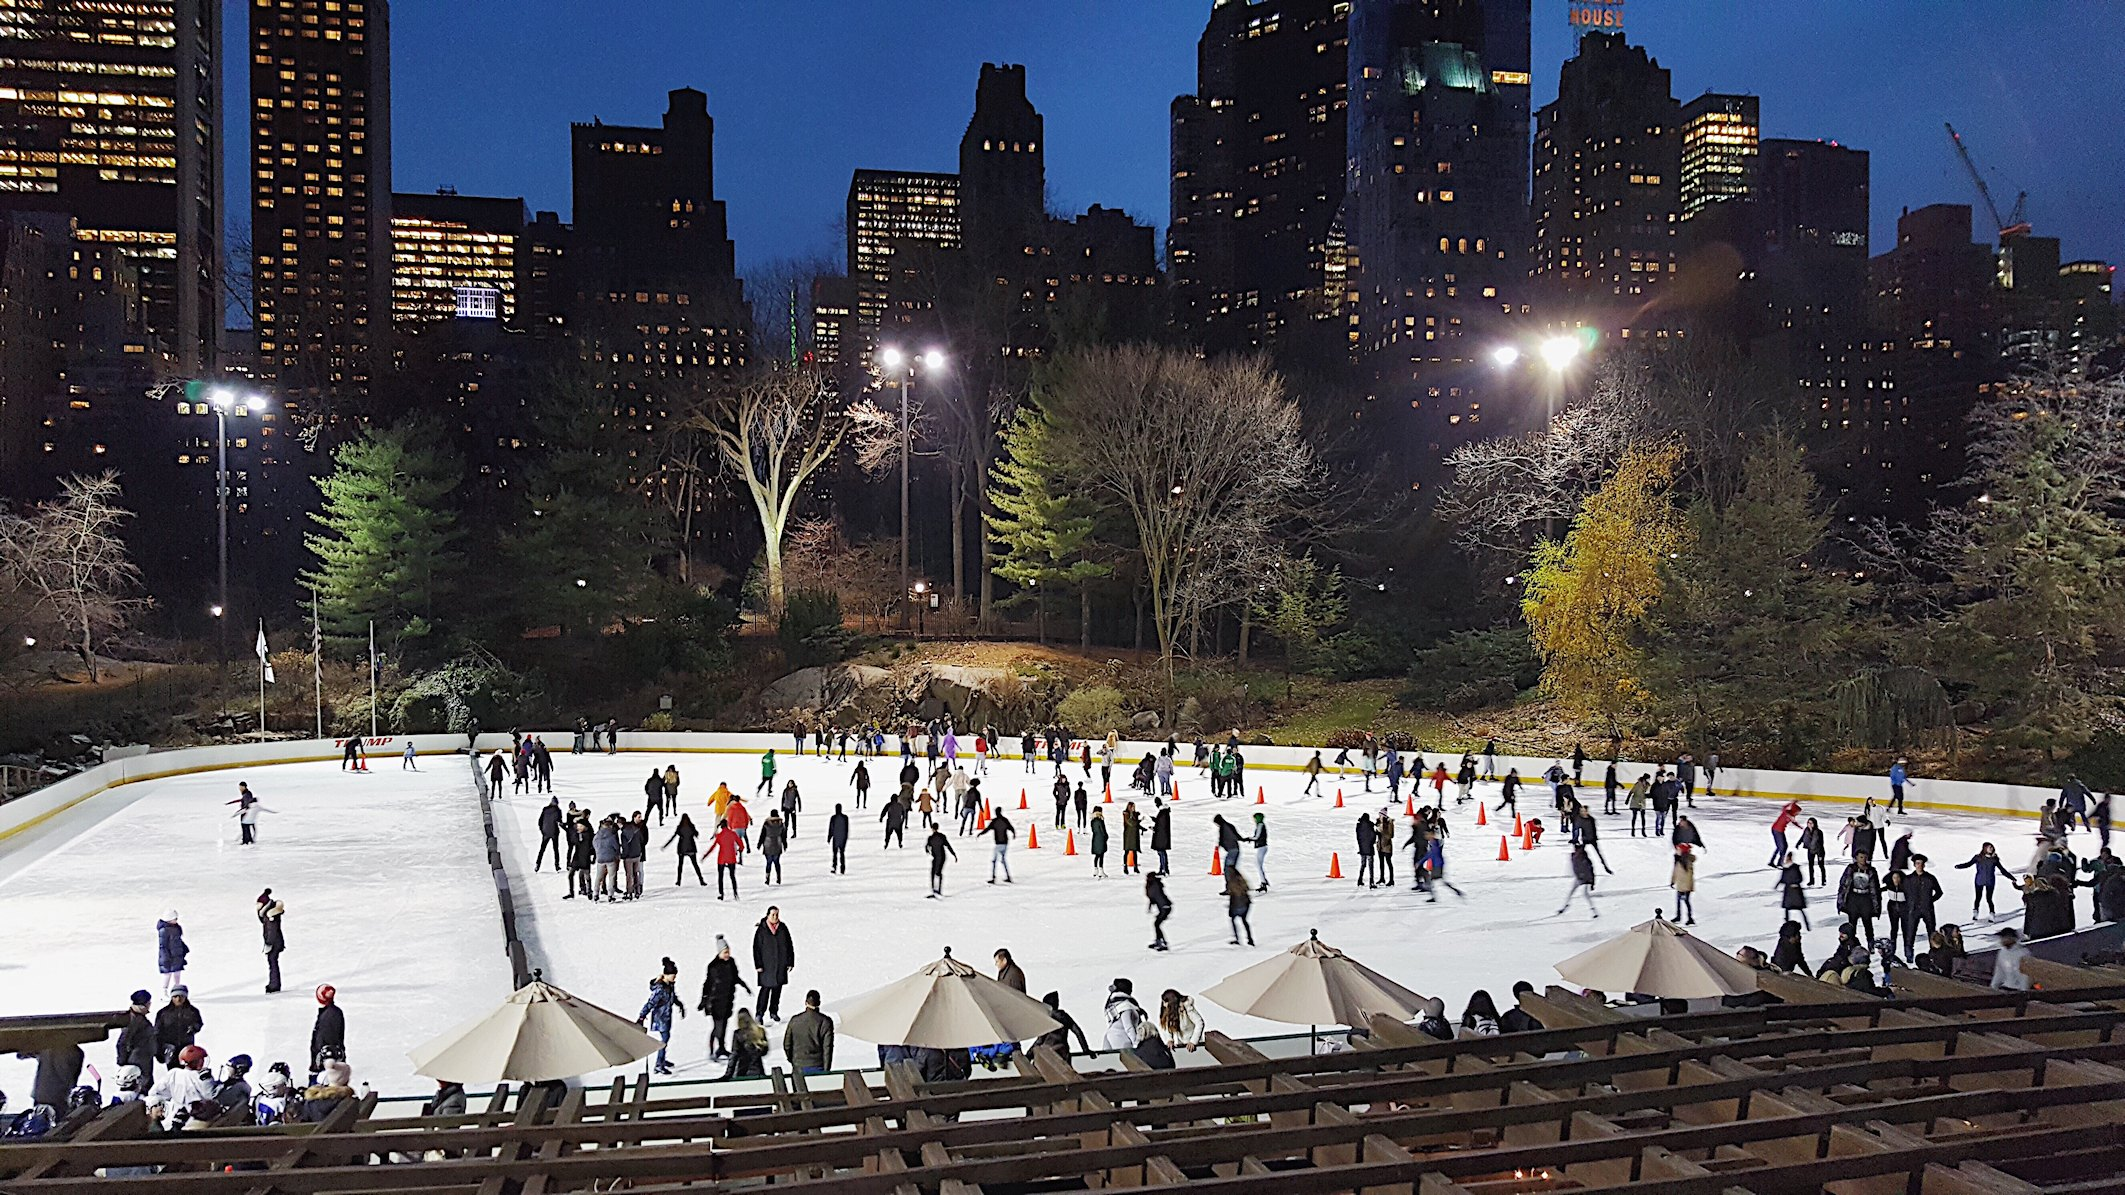 USA, Nowy Jork, Central Park